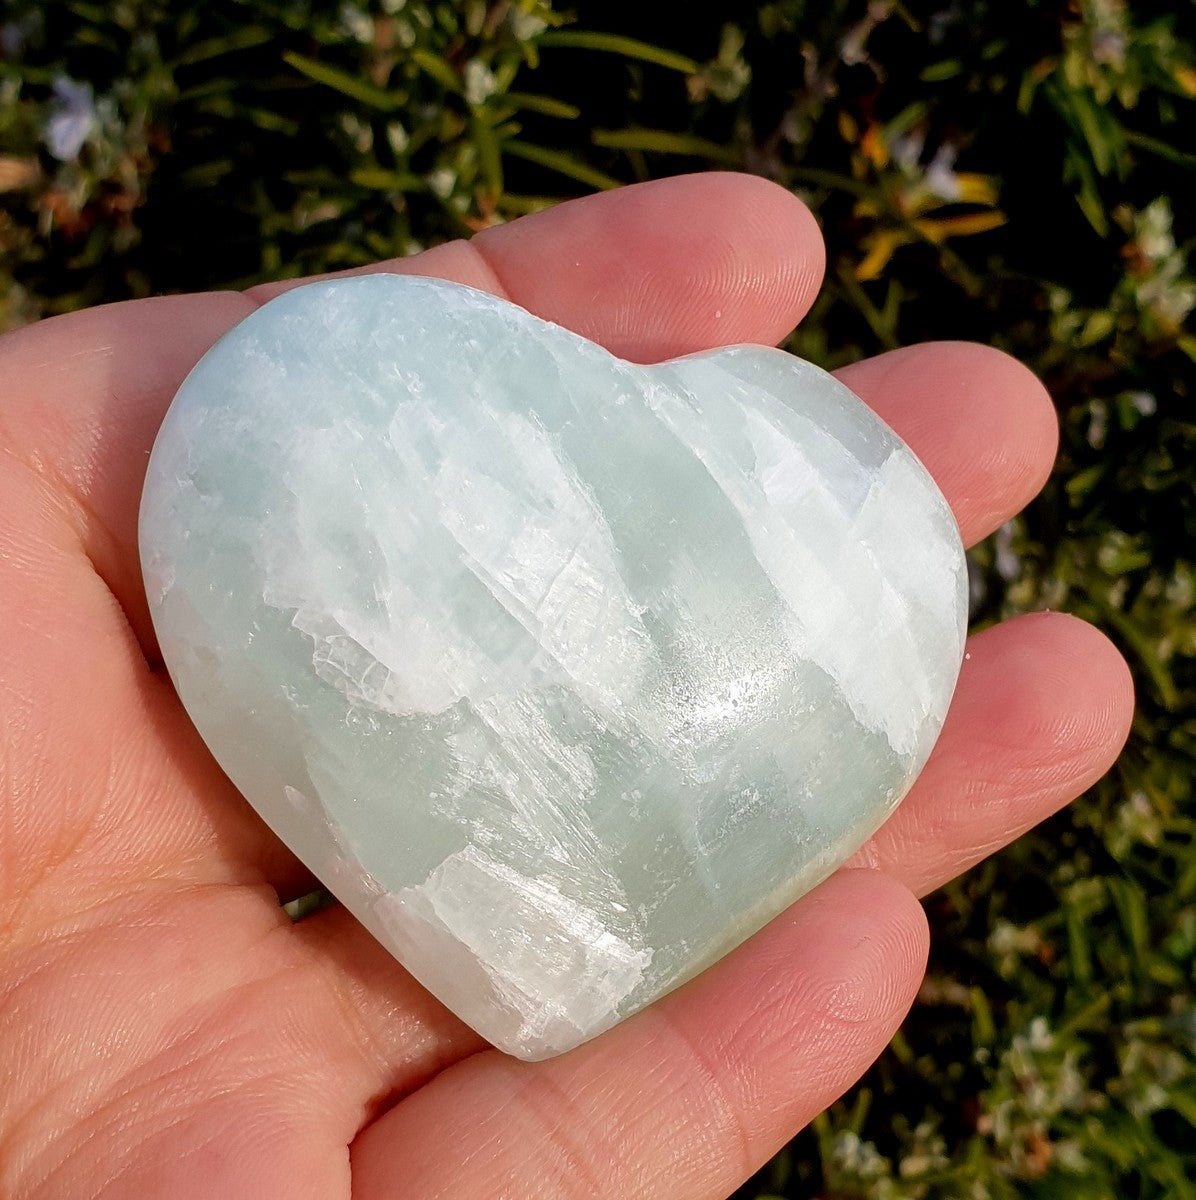 Blue Caribbean Calcite Gemstone Heart - Now at Illiom Crystals - Afterpay Available